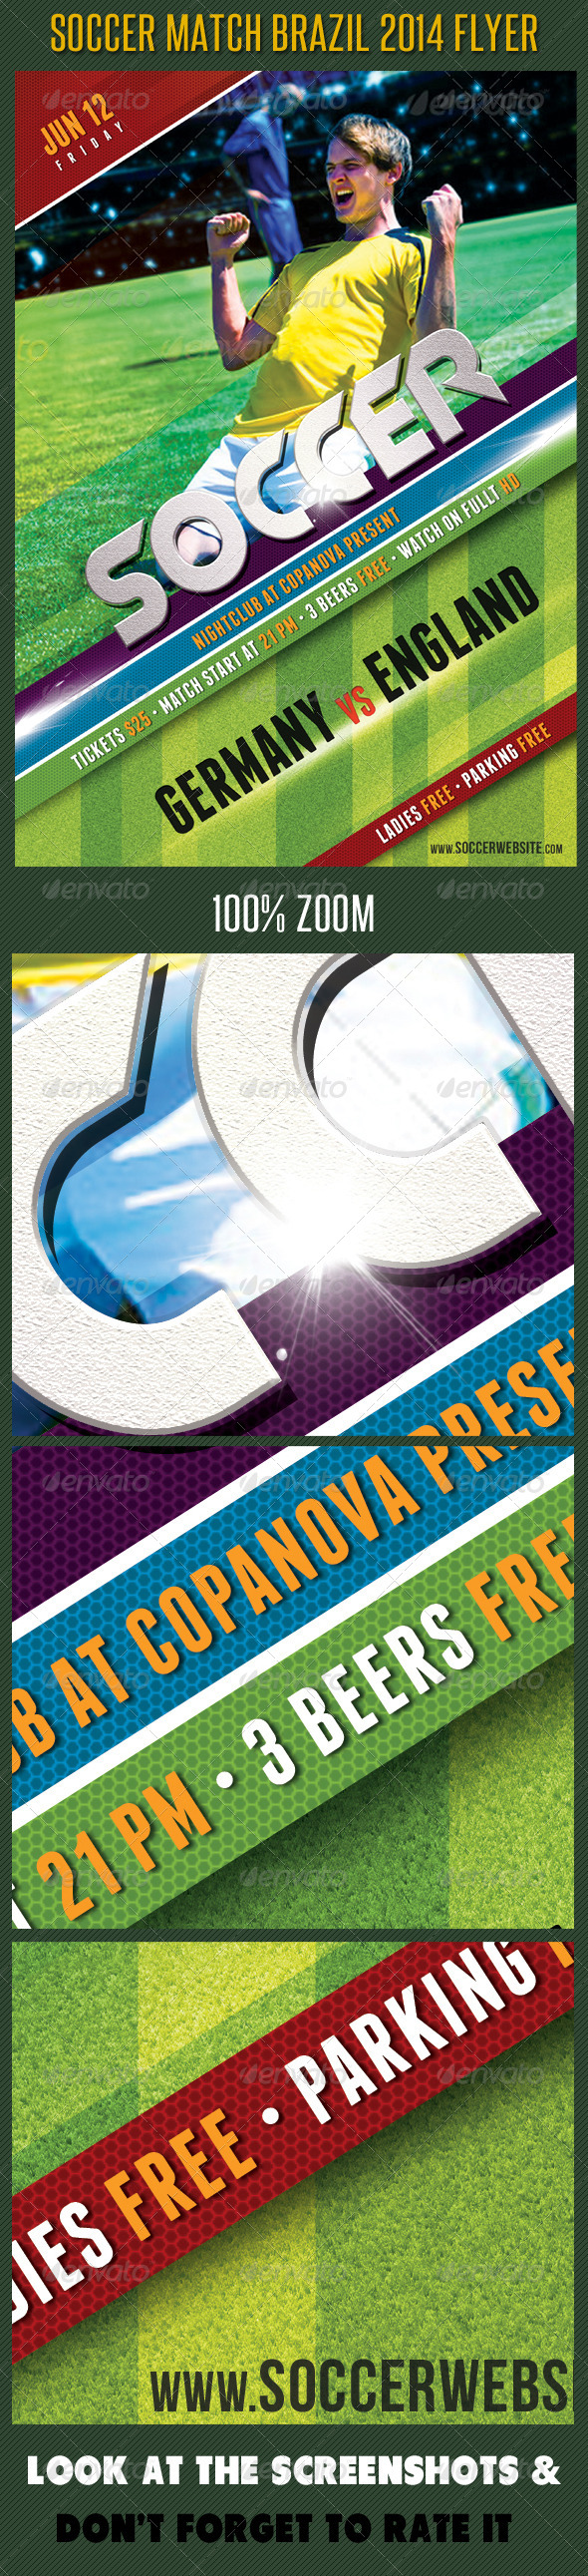 Soccer Tournament 2014 Flyer Template 04 - Sports Events